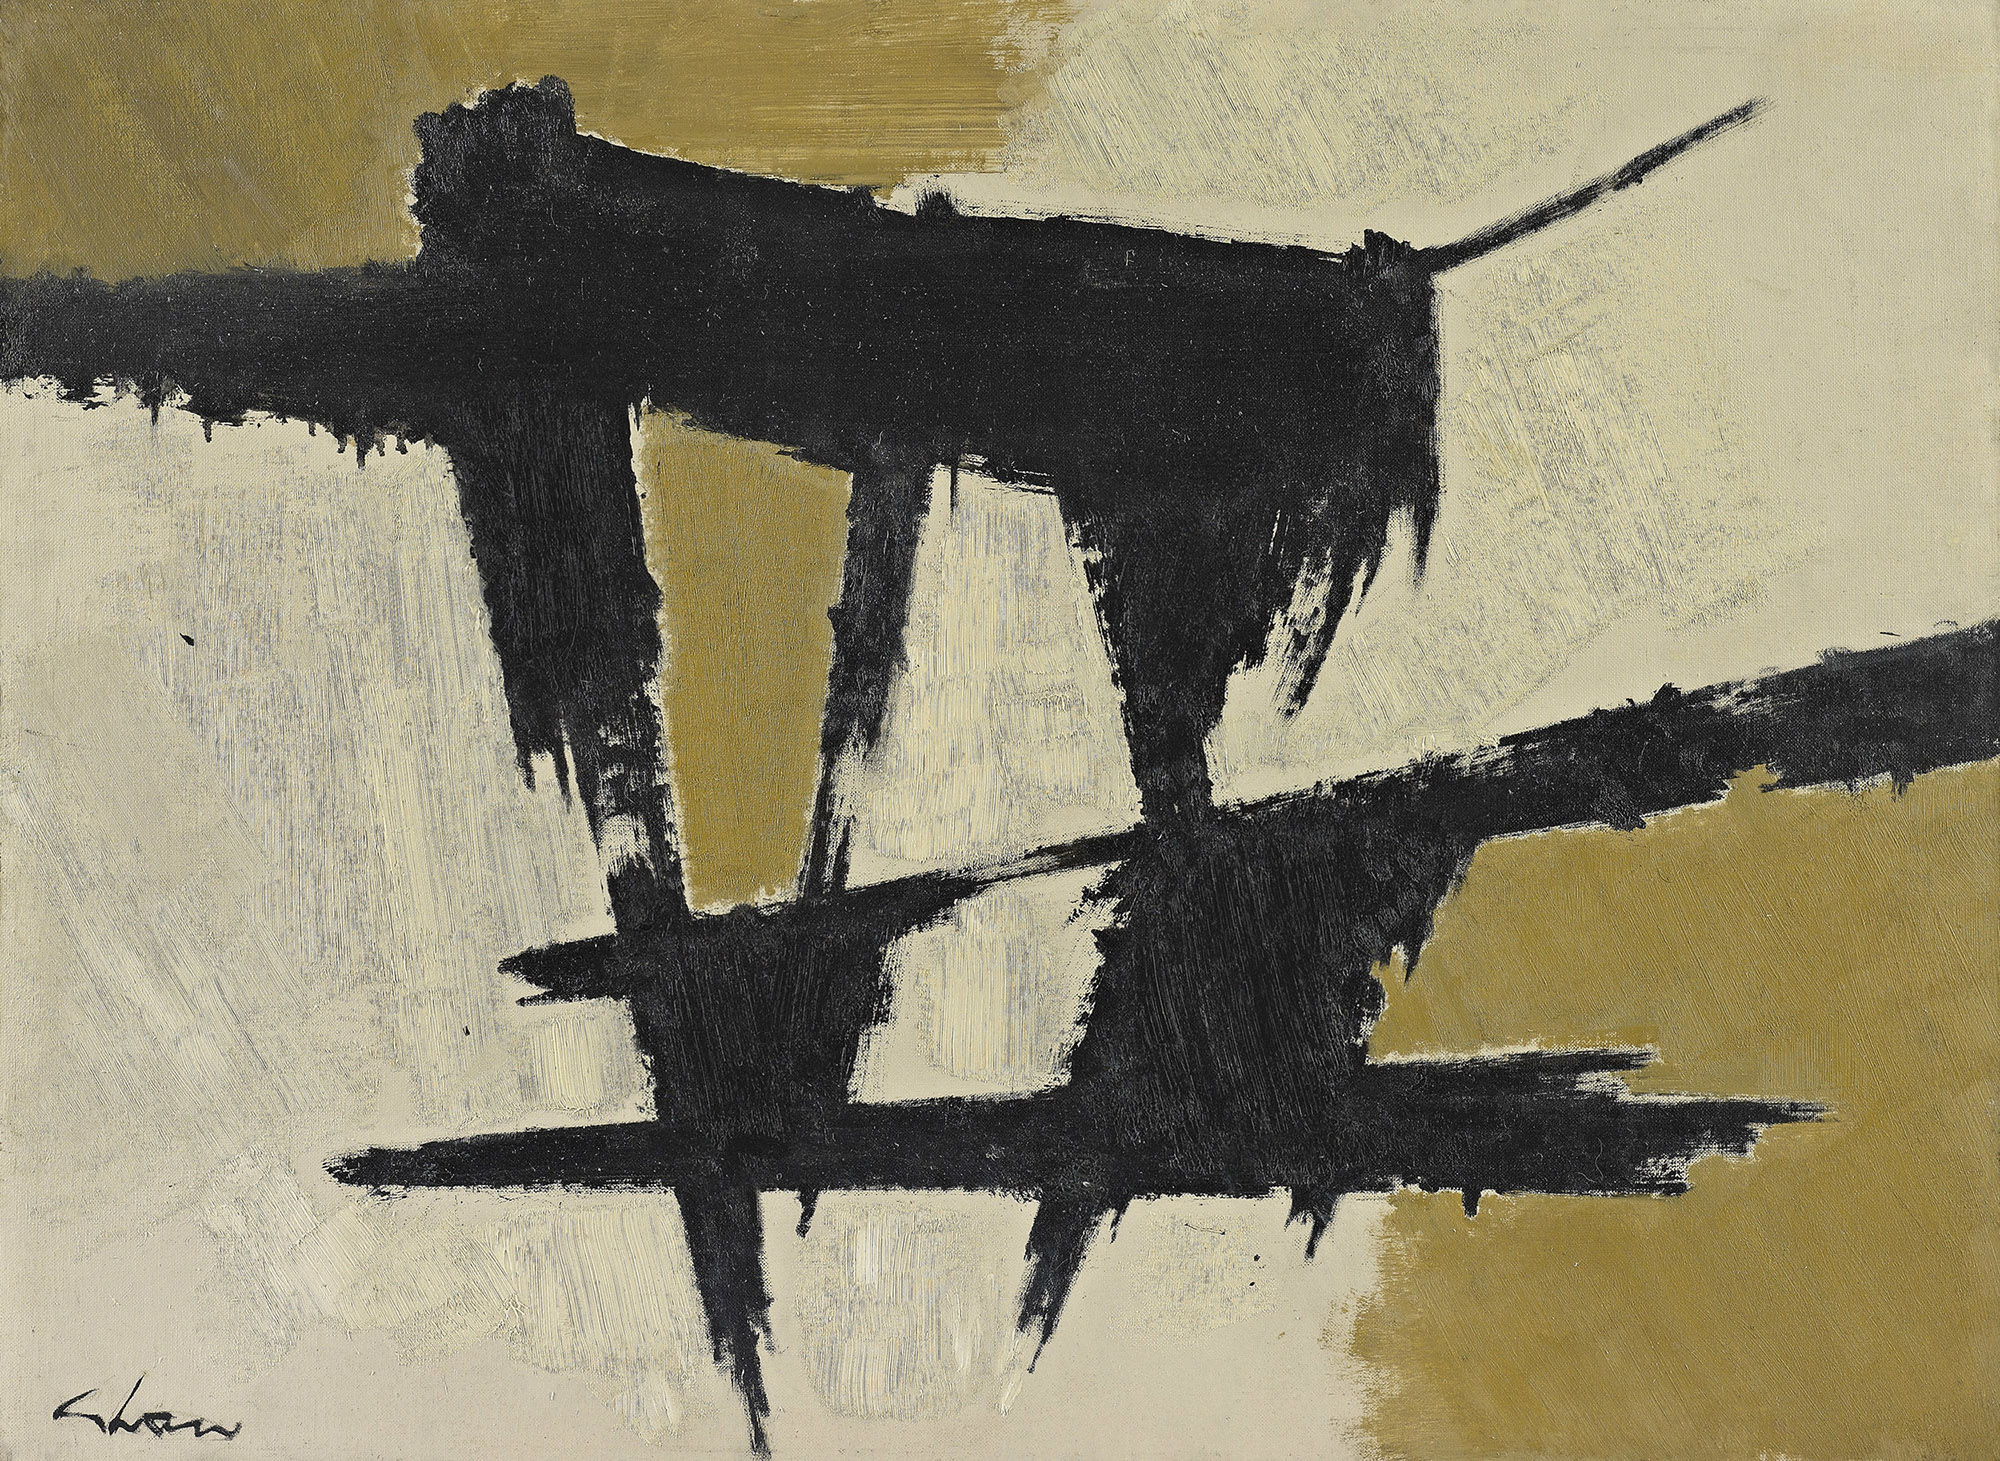 Suspension in Space - 2  , 1960, oil on canvas, 22 x 30 inches